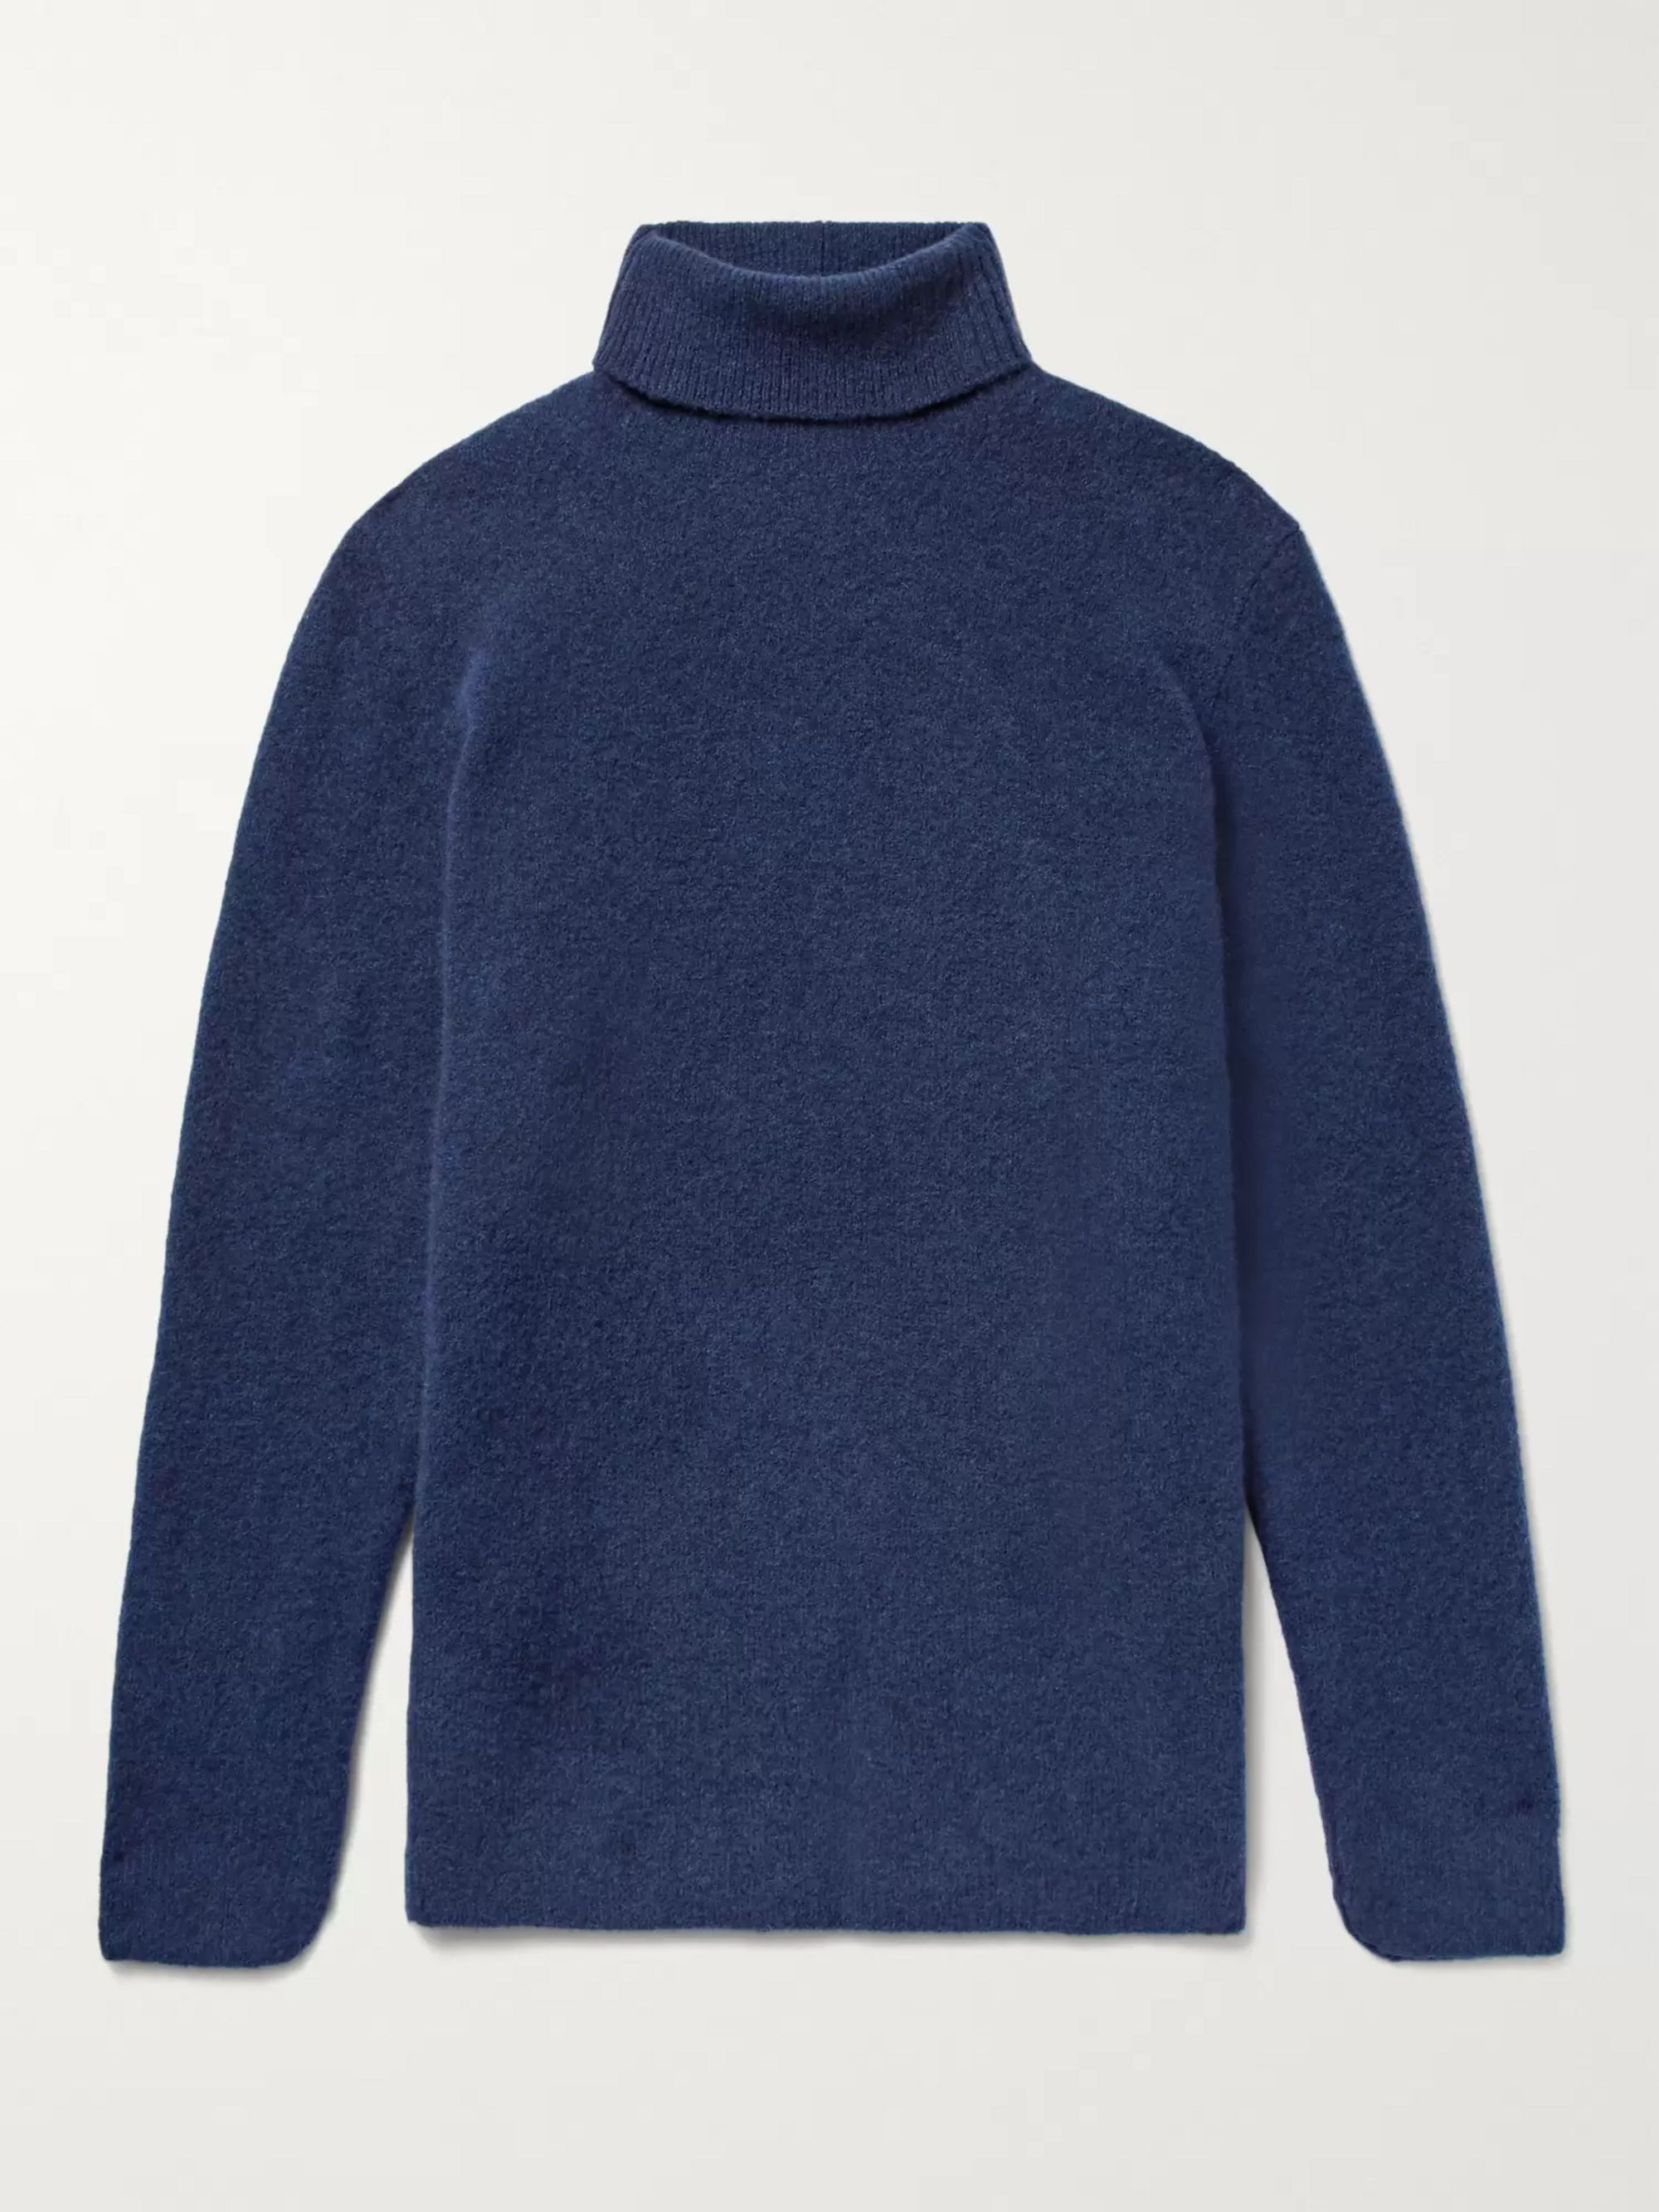 SALLE PRIVÉE Aiden Slim-Fit Mélange Merino Wool-Blend Rollneck Sweater